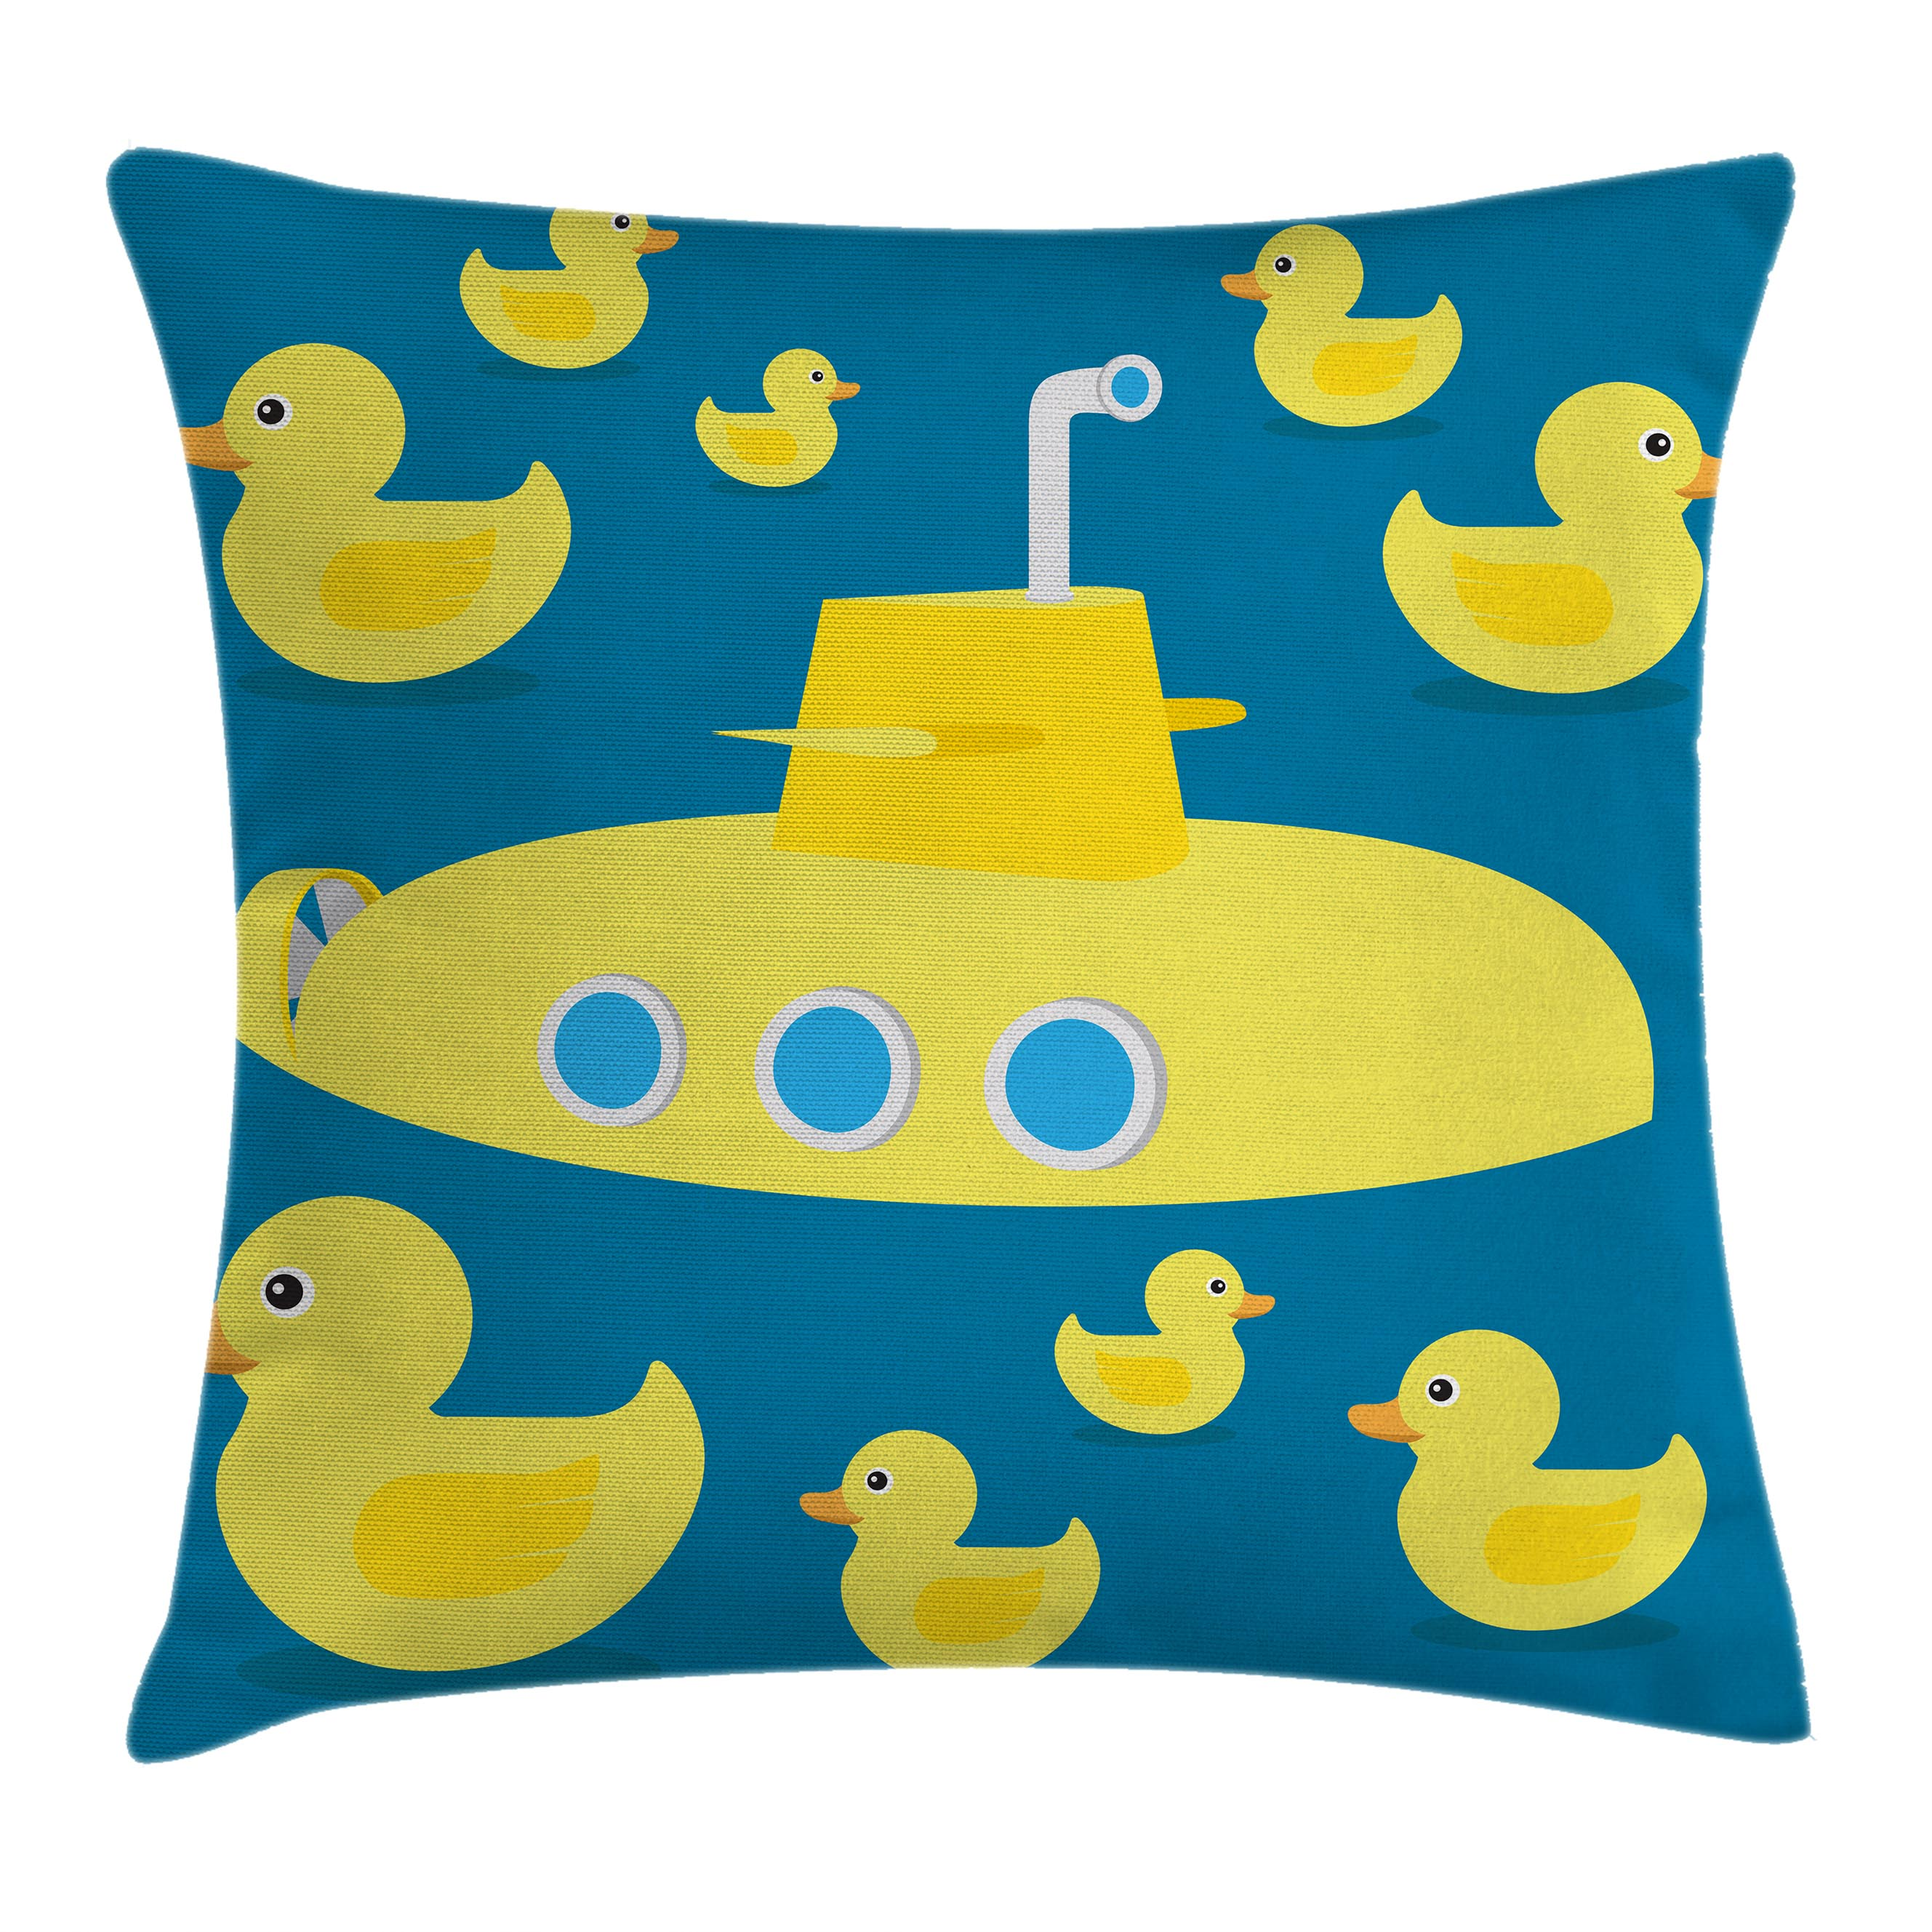 Rubber Duck Throw Pillow Cushion Cover, Duckies Swimming in the Sea with a Yellow Submarine Kids Party Nautical Print, Decorative Square Accent Pillow Case, 16 X 16 Inches, Navy Blue, by Ambesonne